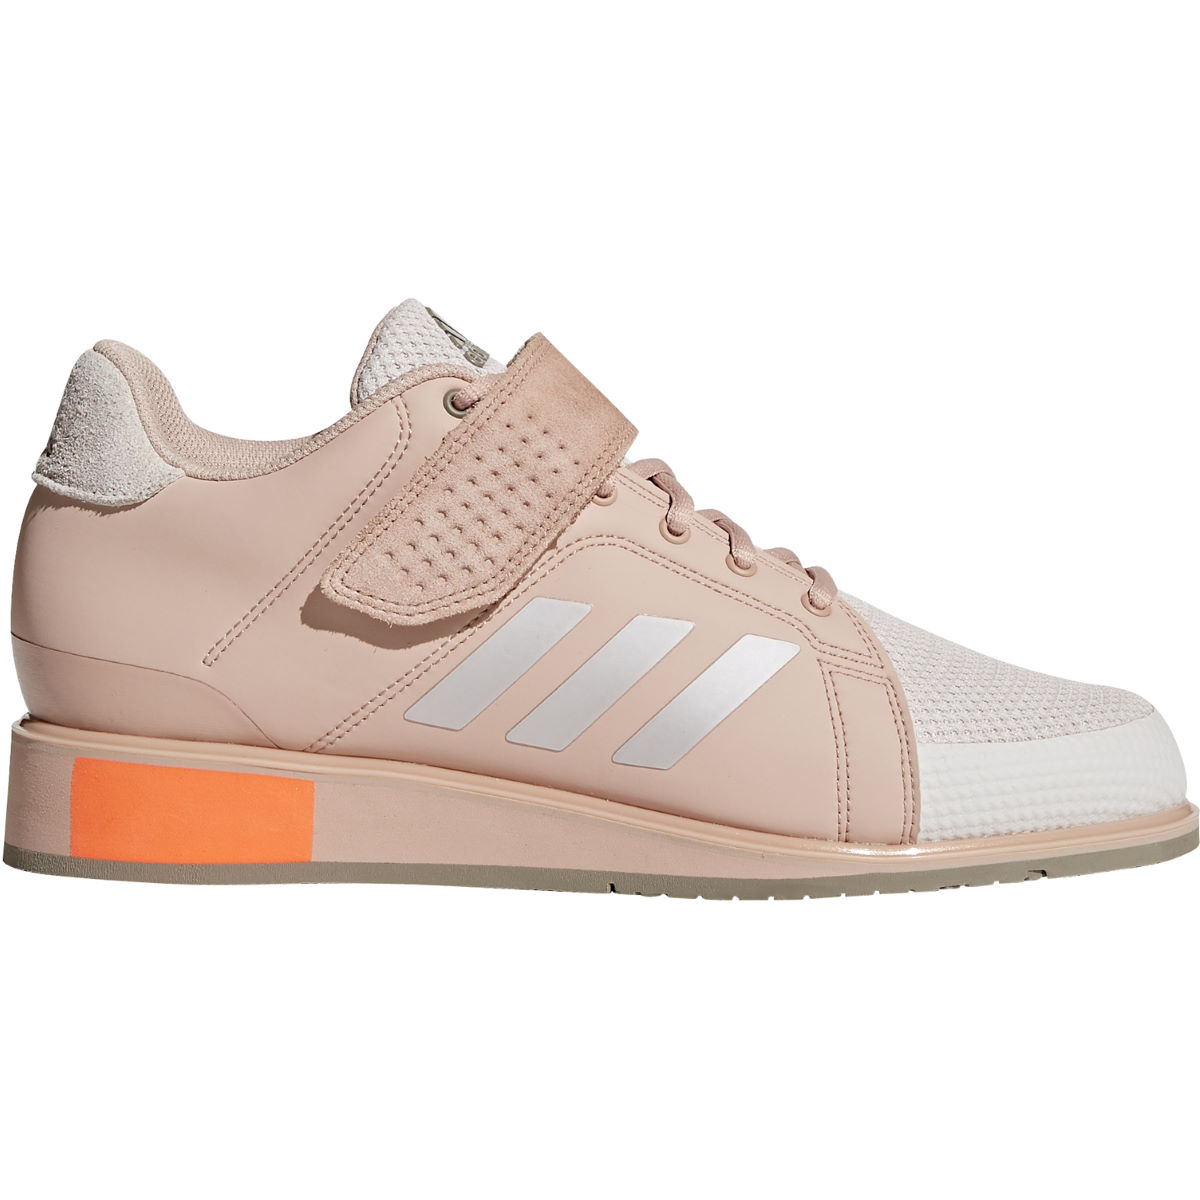 Chaussures Femme adidas Power Perfect III - UK 4 Pink/Silver